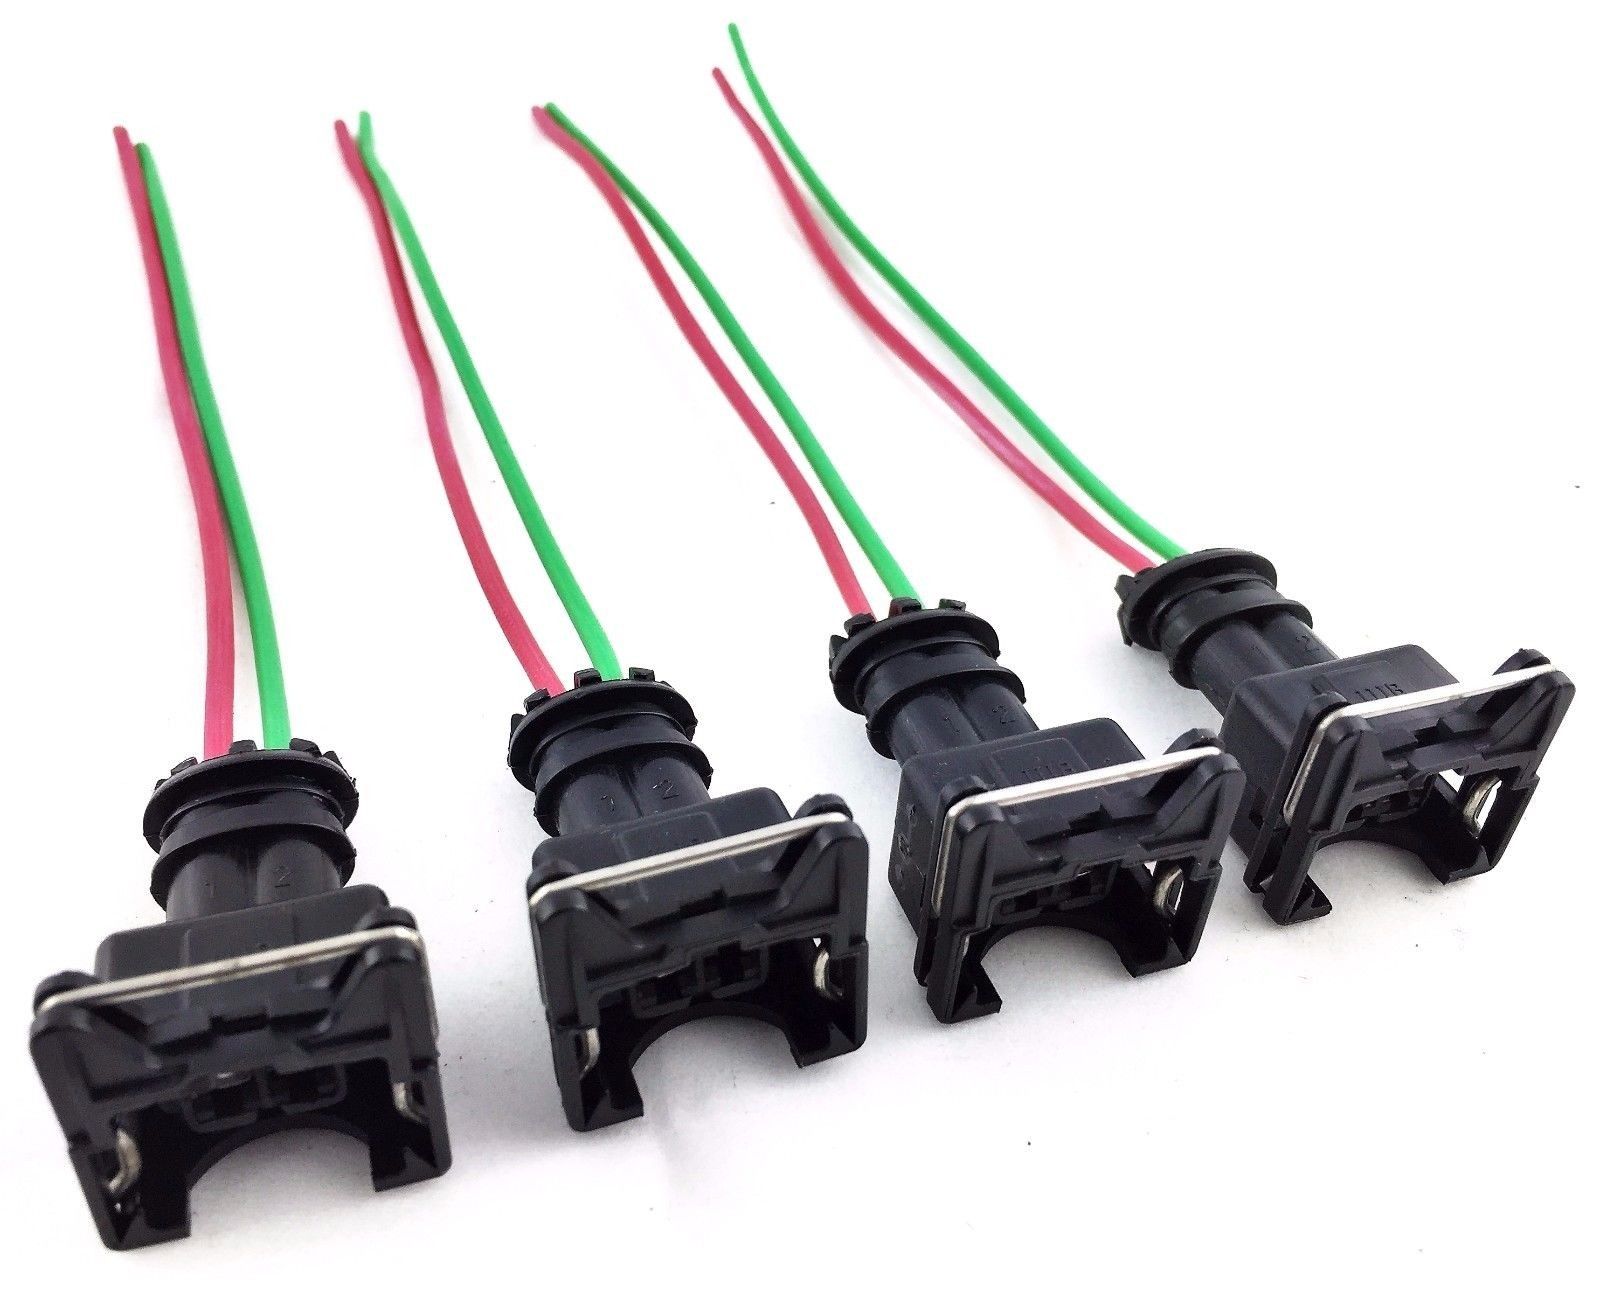 4 Rc Fuel Injector Connector Wiring Harness Plug Clips Bosch Ev1 Greddy Pigtail Obd1 Gm